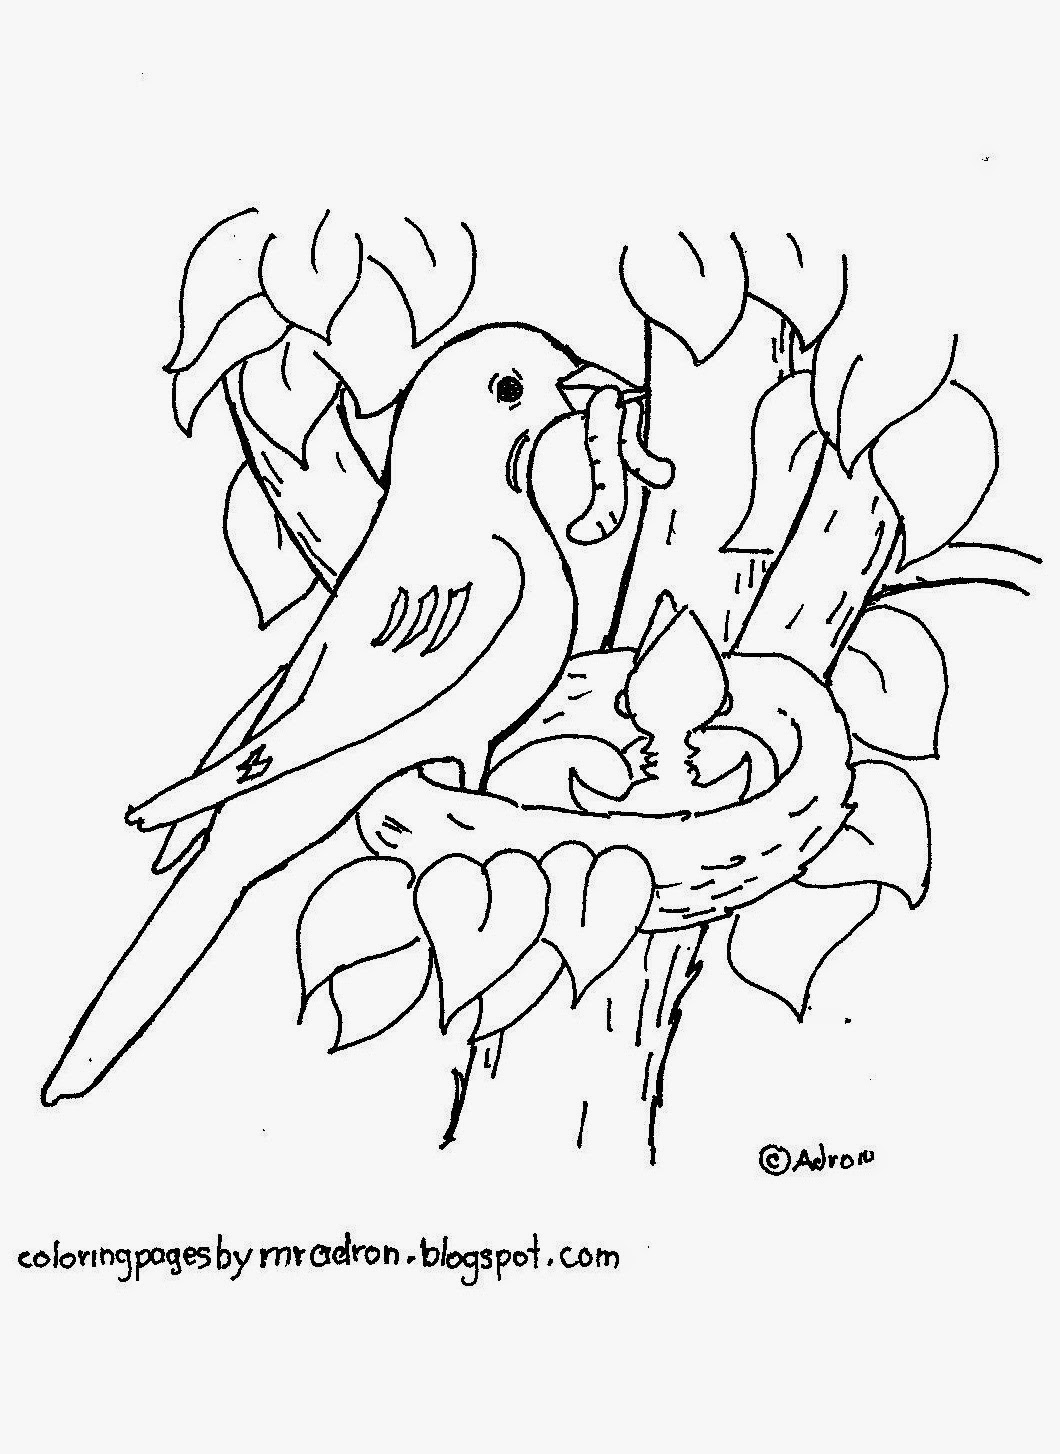 Bird In Nest Drawing at GetDrawings.com | Free for personal use Bird ...